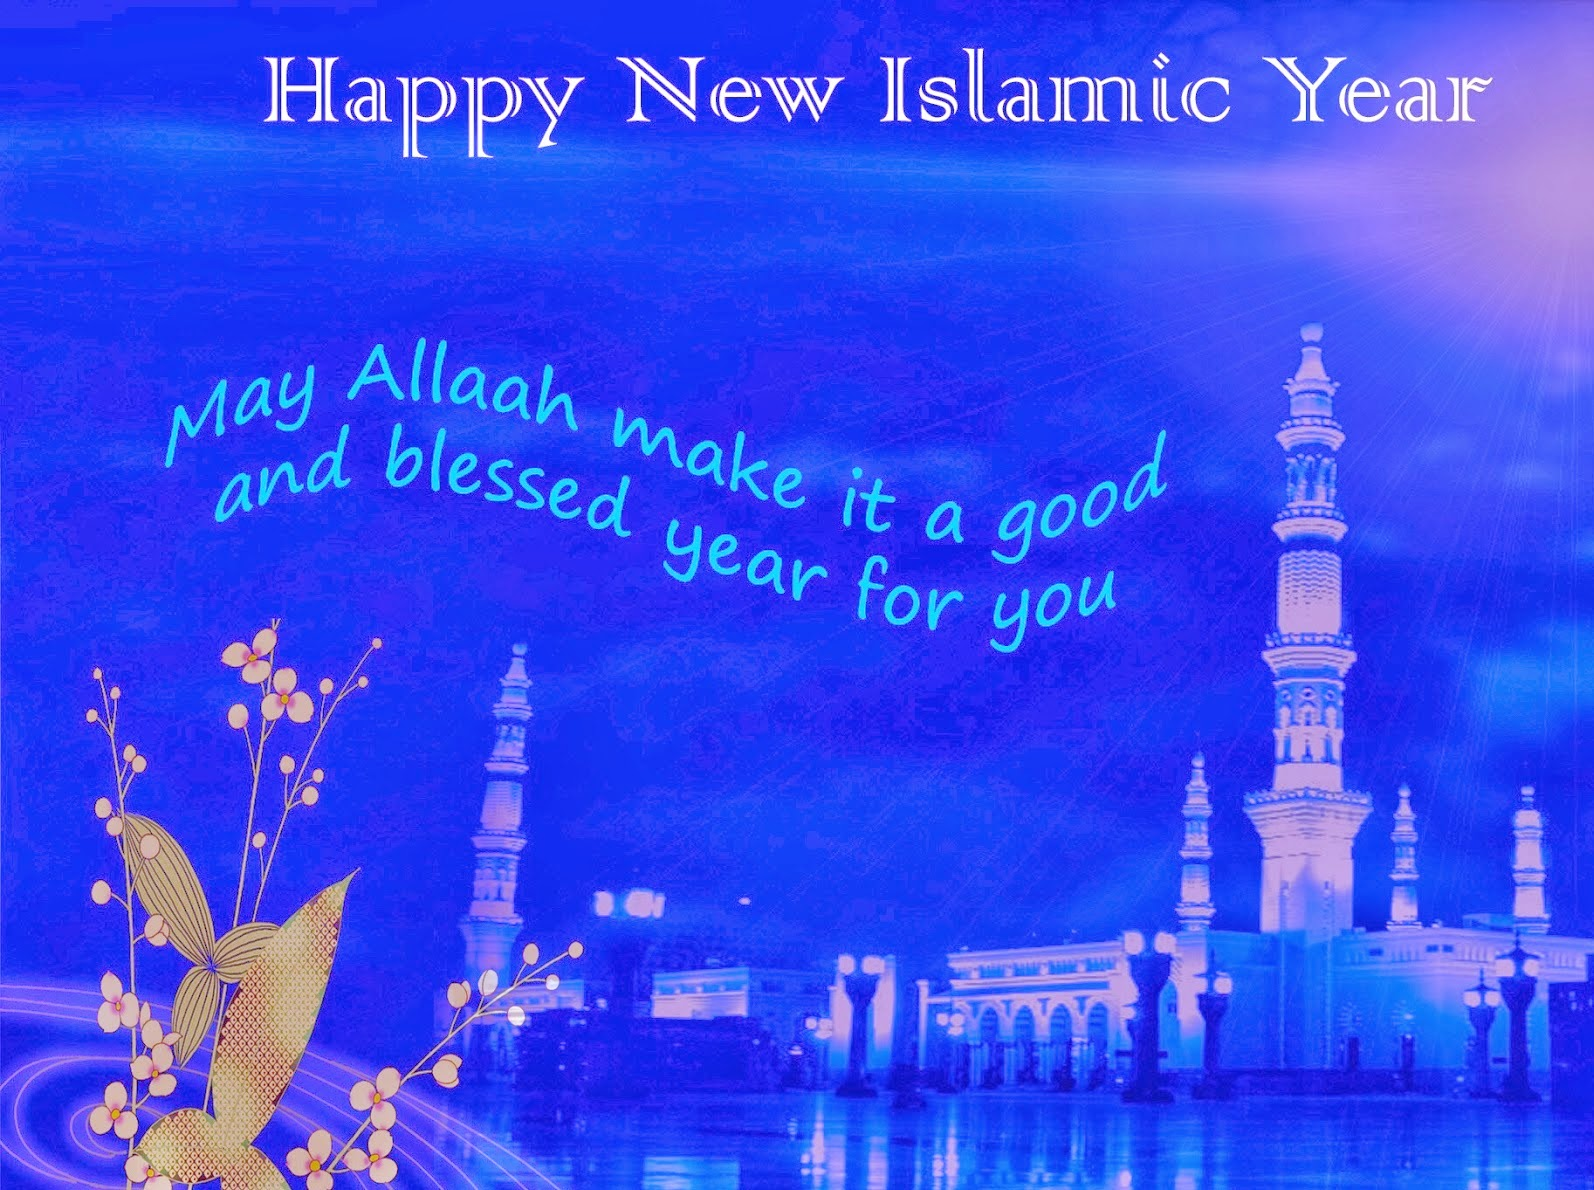 happy new year 2015 new is a good site for beautiful and best wallpapers of 2015 you can download and enjoy share with your friends and your family